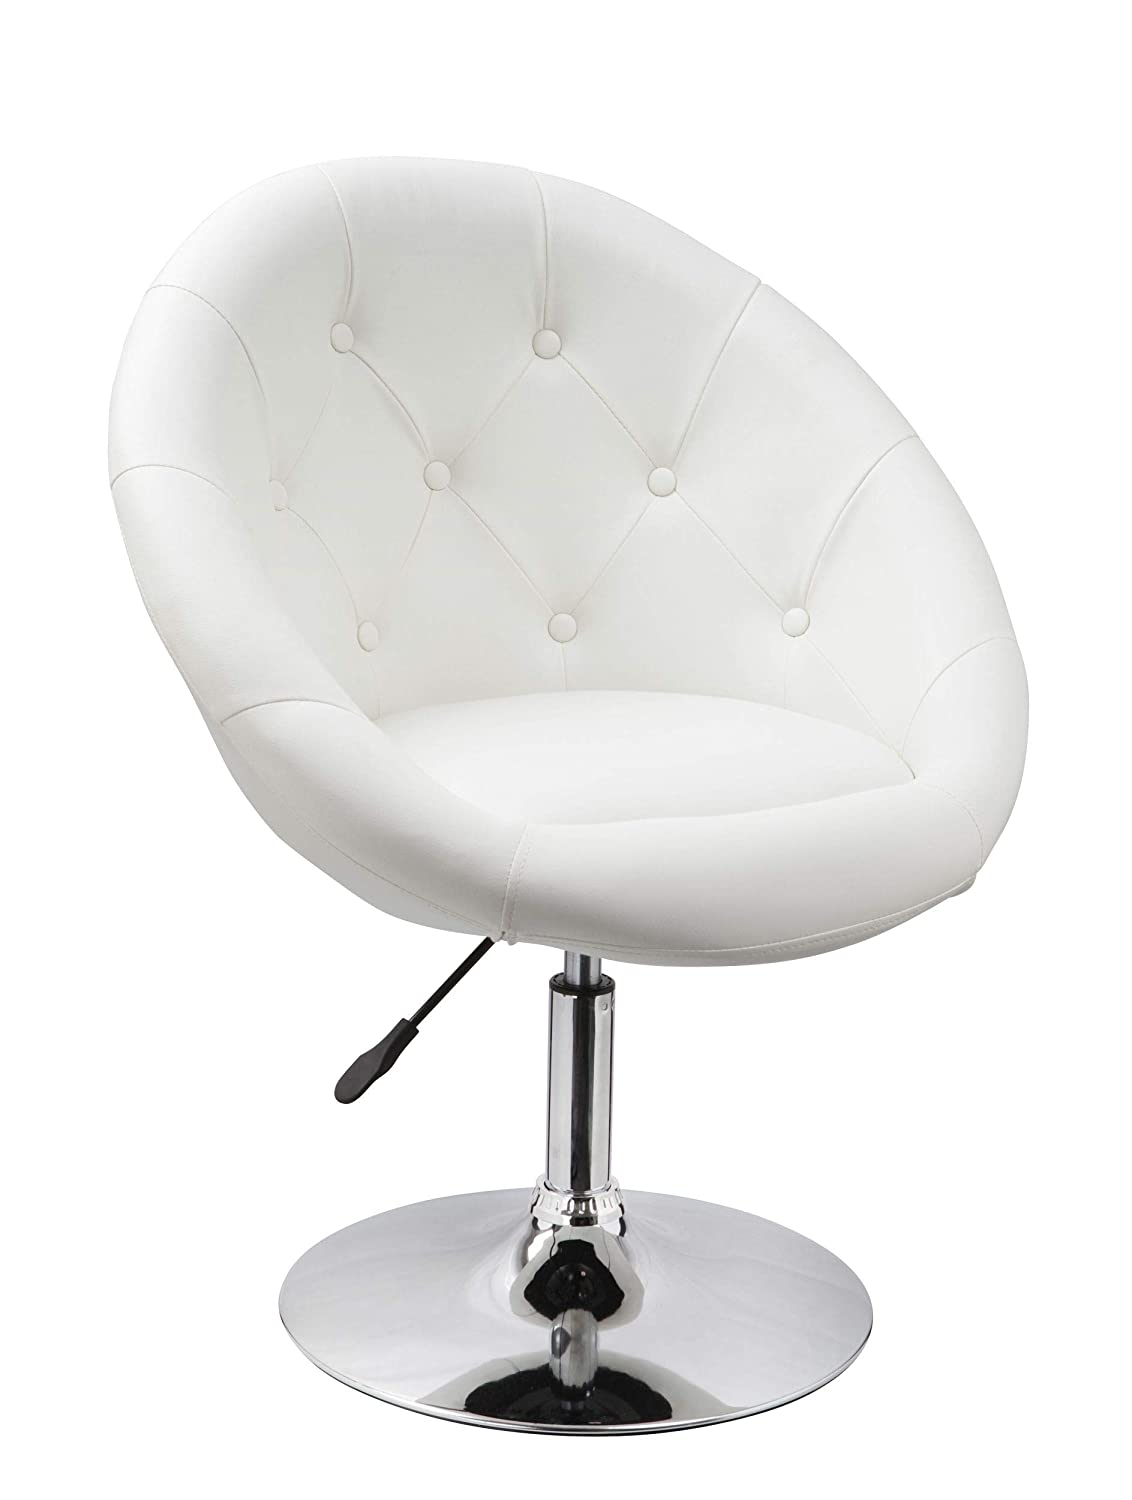 Armchair White Club Chair Lounge Chair Faux Leather Dining Chair Height Adjustable Duhome 0332 Duhome Elegant Lifestyle®